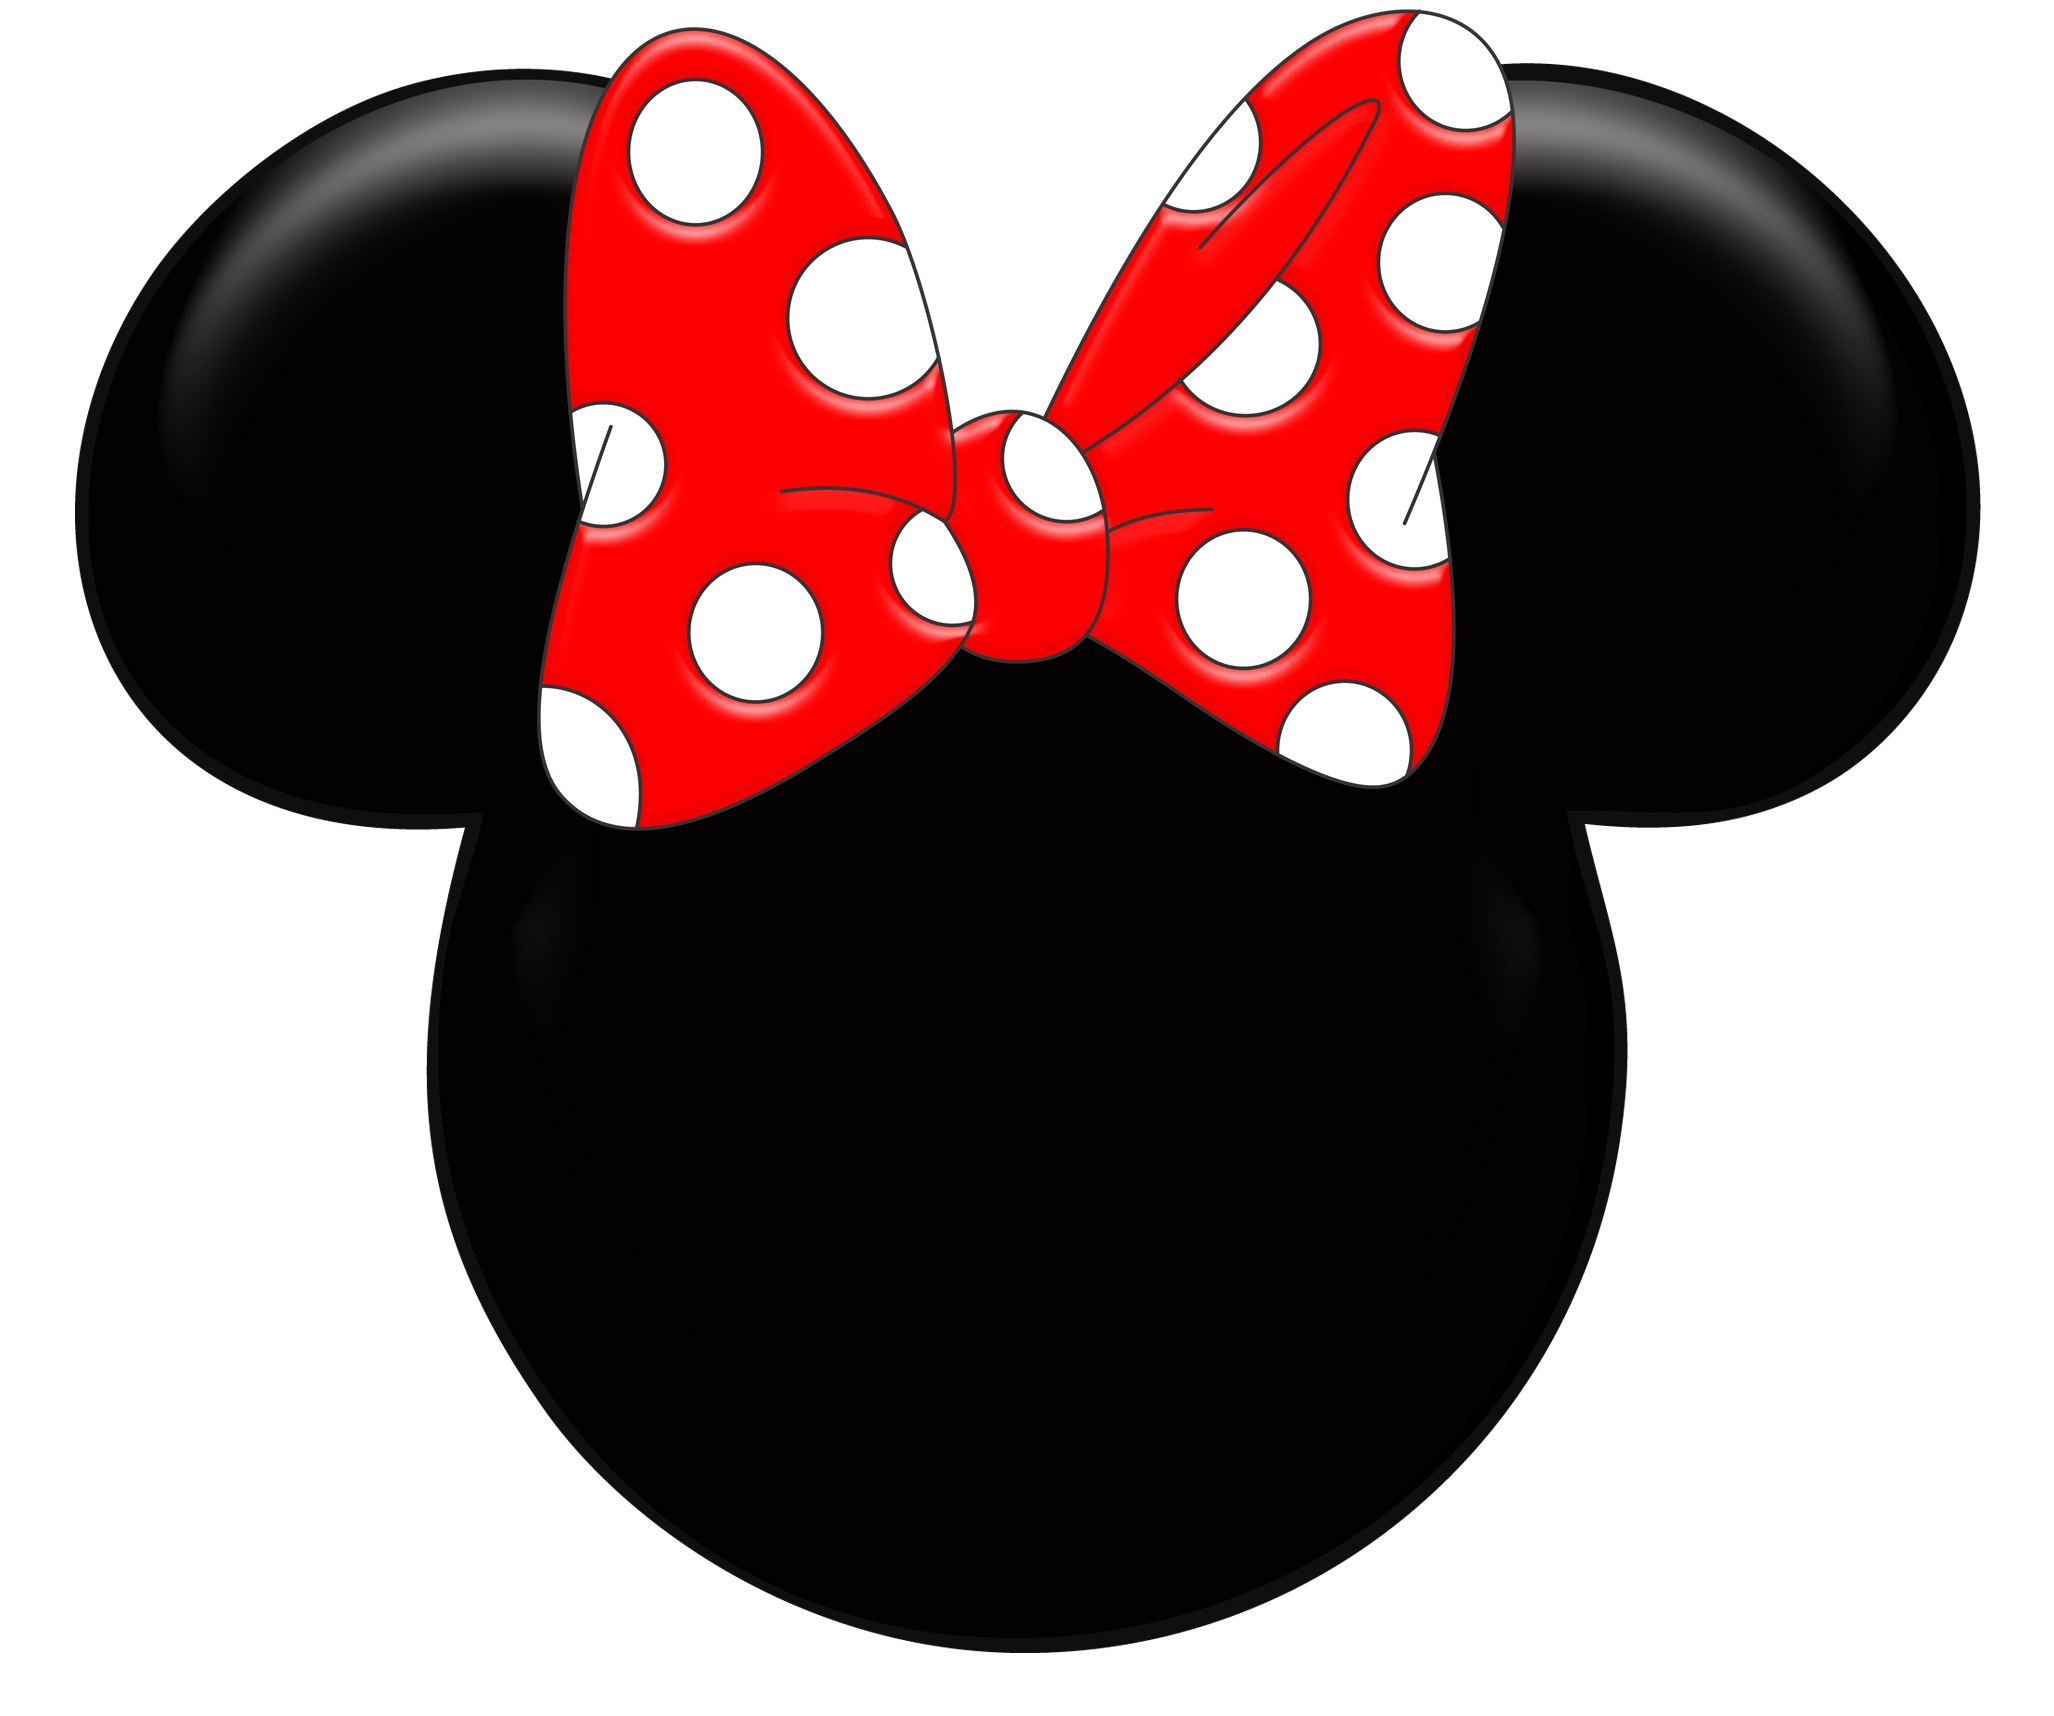 Red Minnie Mouse Wallpaper Kit Digital M-Red Minnie Mouse Wallpaper Kit Digital Minnie Mouse Png-1